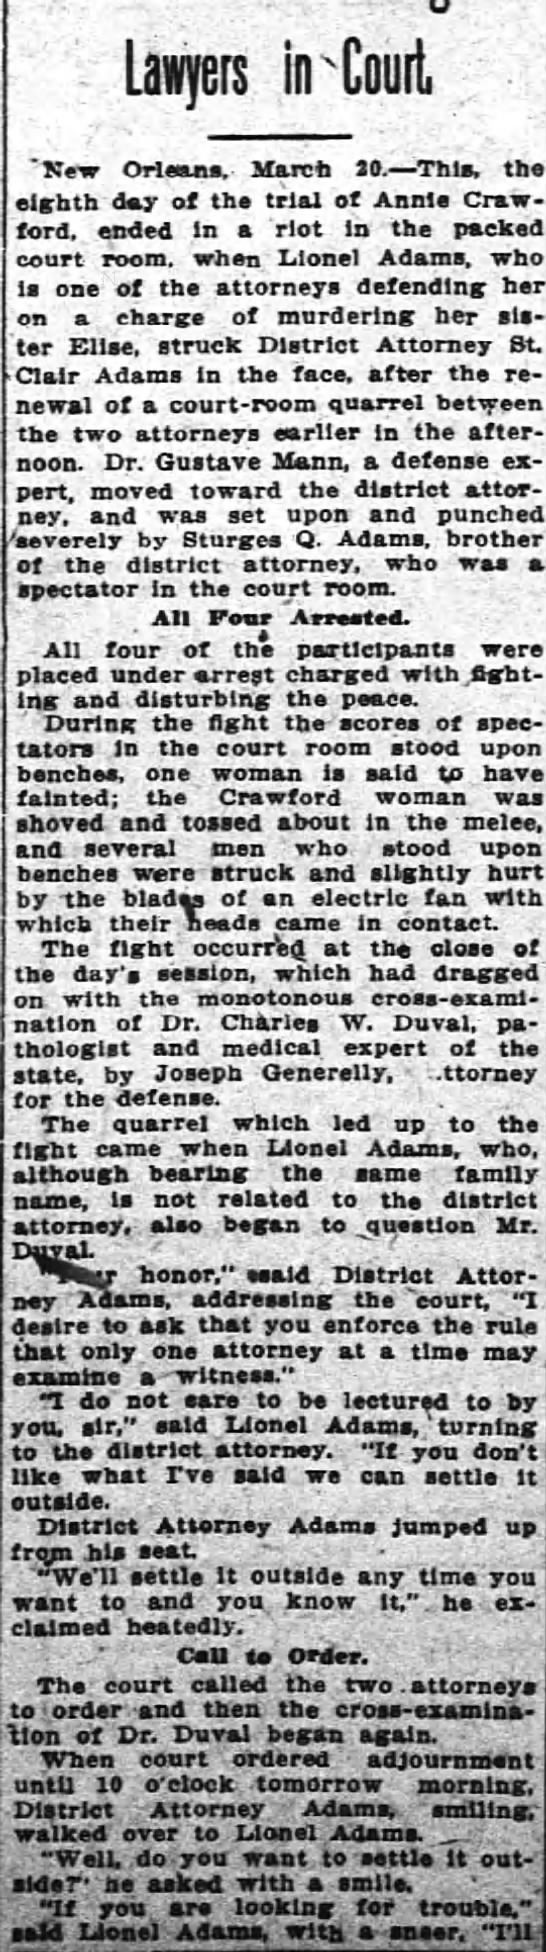 """Attorney Joseph GenerellyMarch 21, 1912 - Lawyers in Court """"New Orleans. March 10. — This..."""